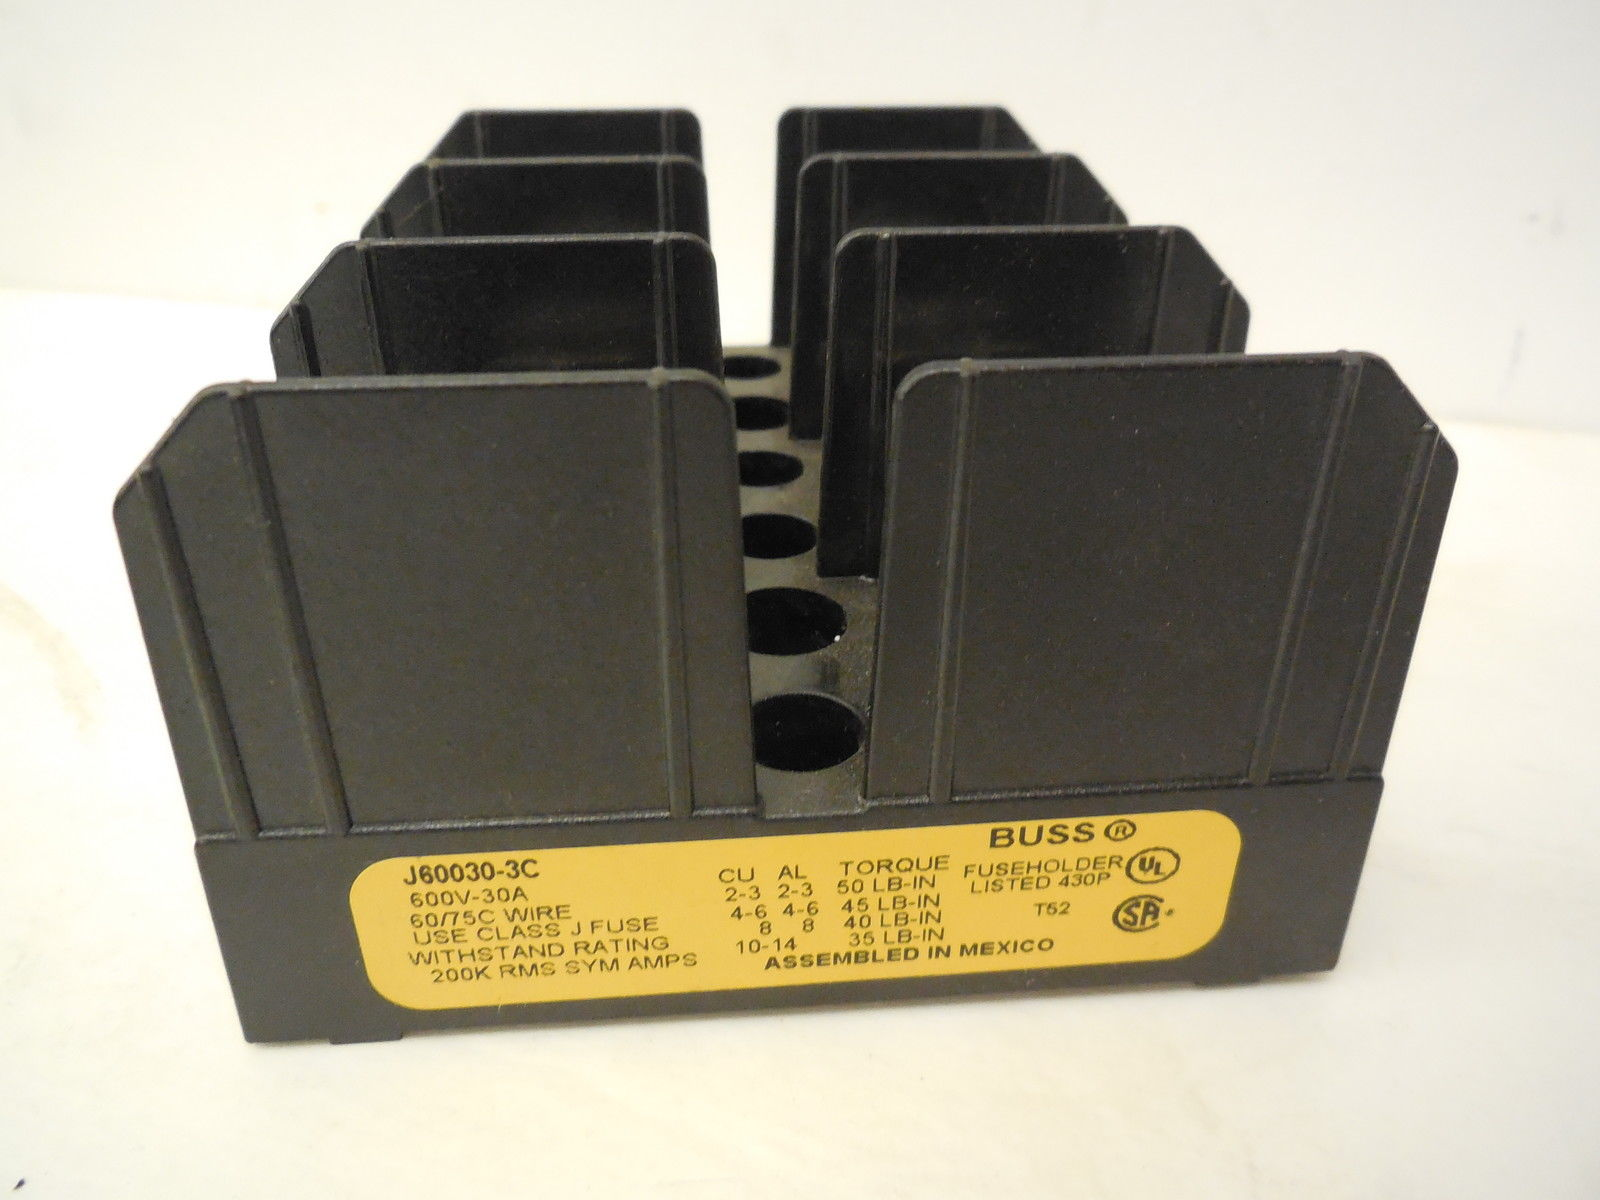 Sb Industrial Supply Mro Plc Equipment Parts Bussmann Fuse Box New J60030 3c Block J600303c